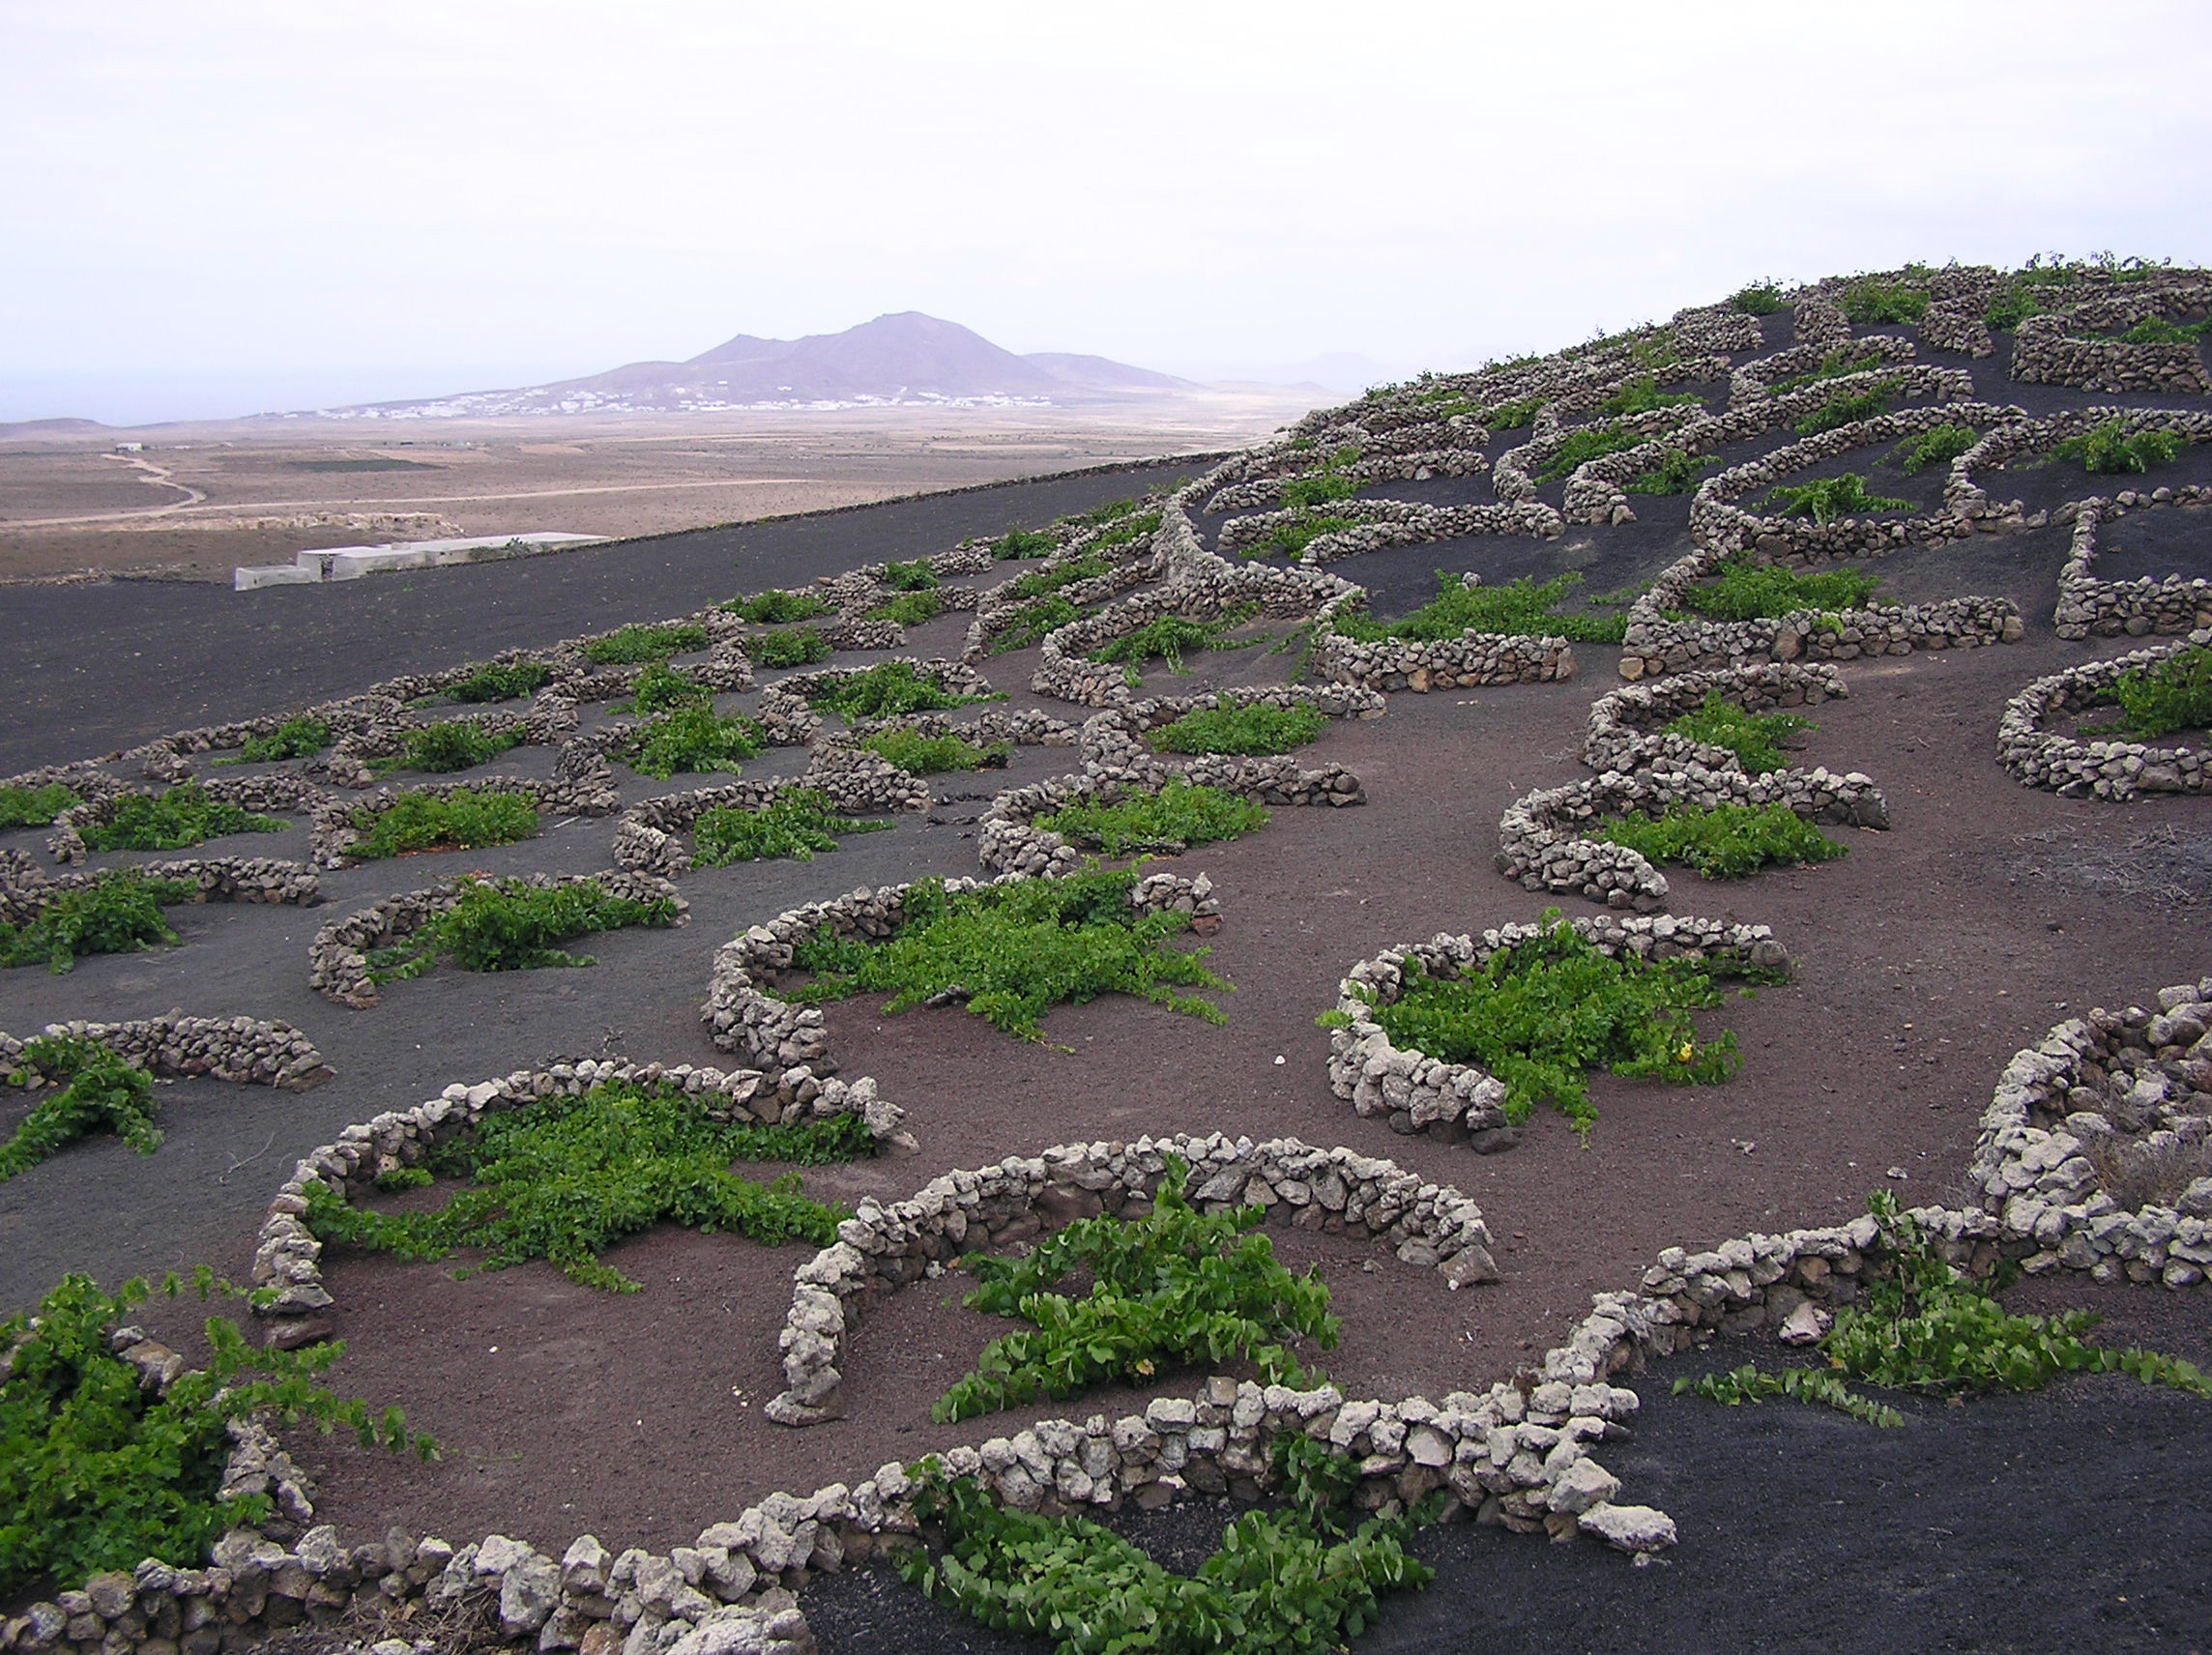 Vineyards in Lazarote, Canary Islands